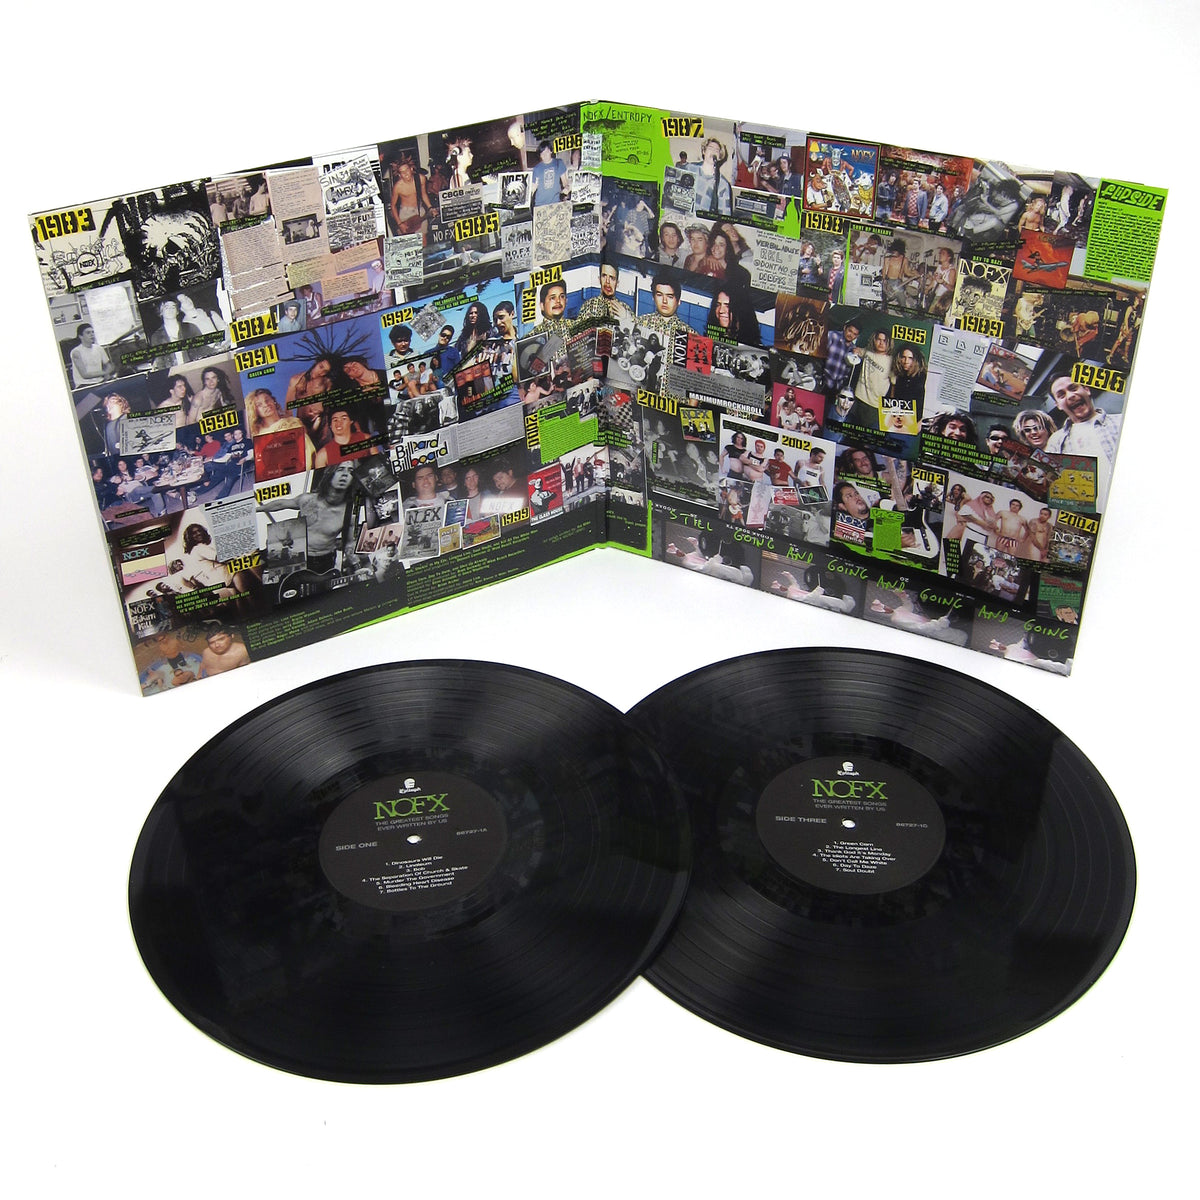 NOFX: The Greatest Songs Ever Written (By Us) Vinyl 2LP